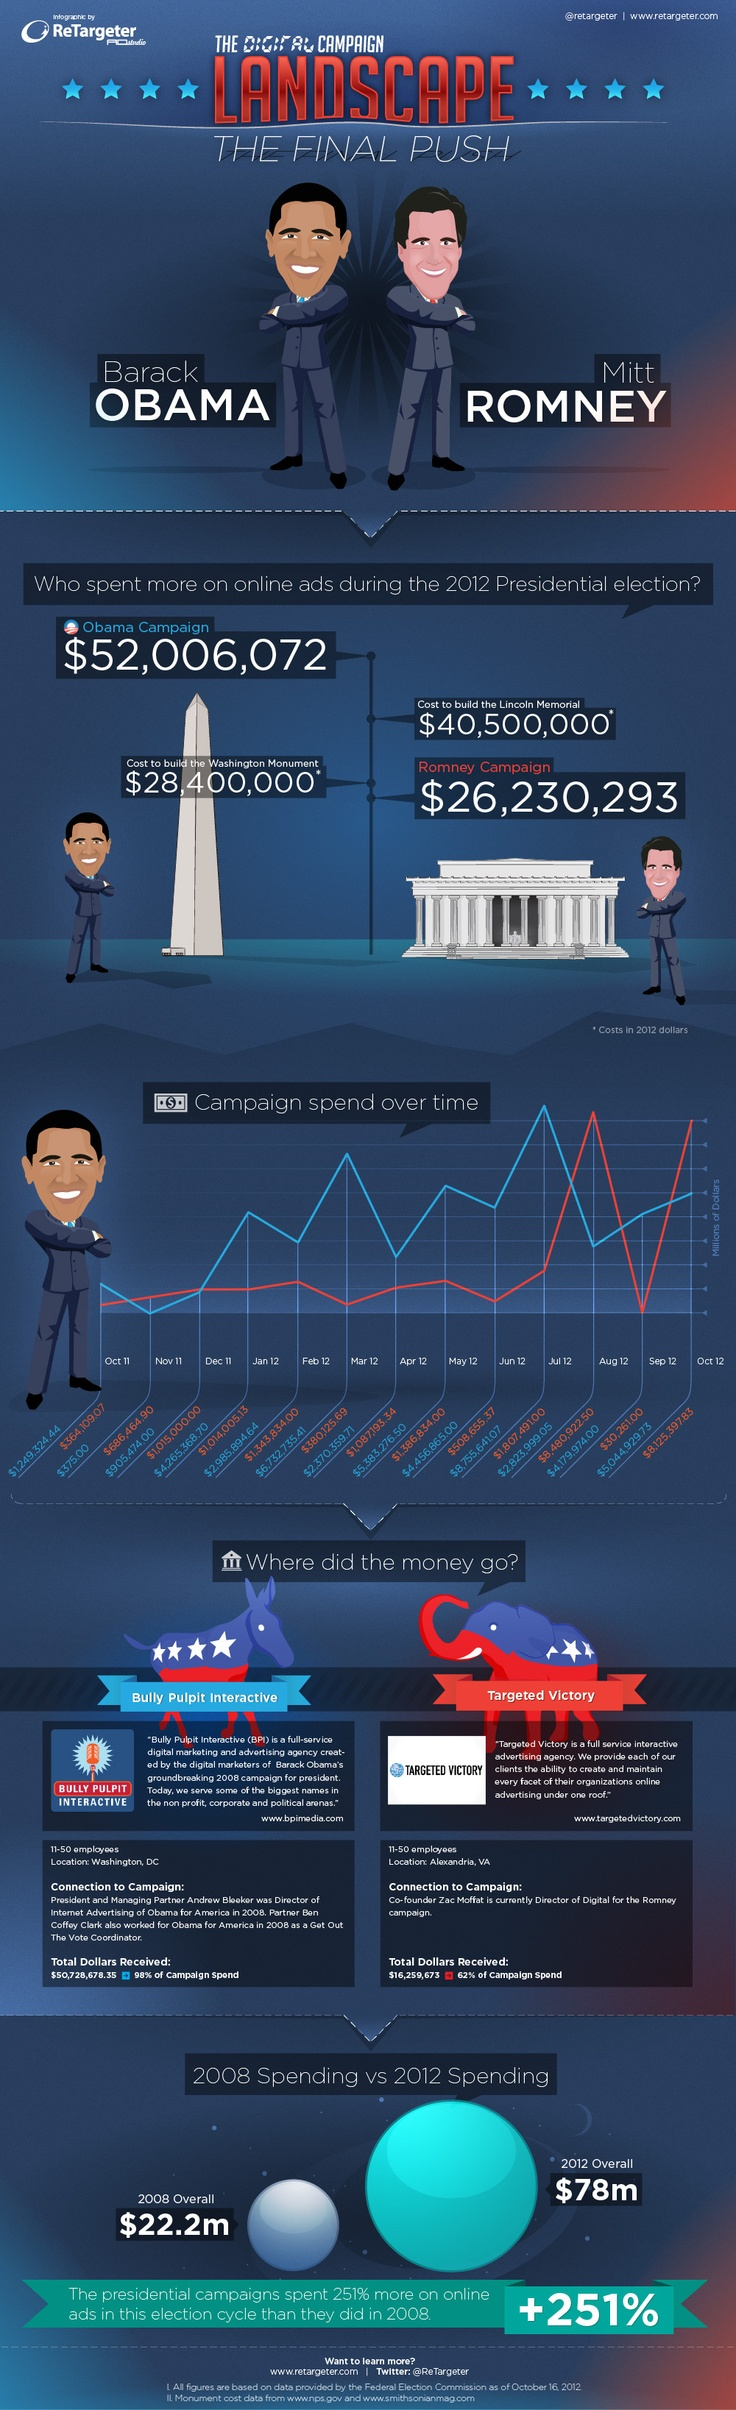 Obama outspends Romney online during #election2012